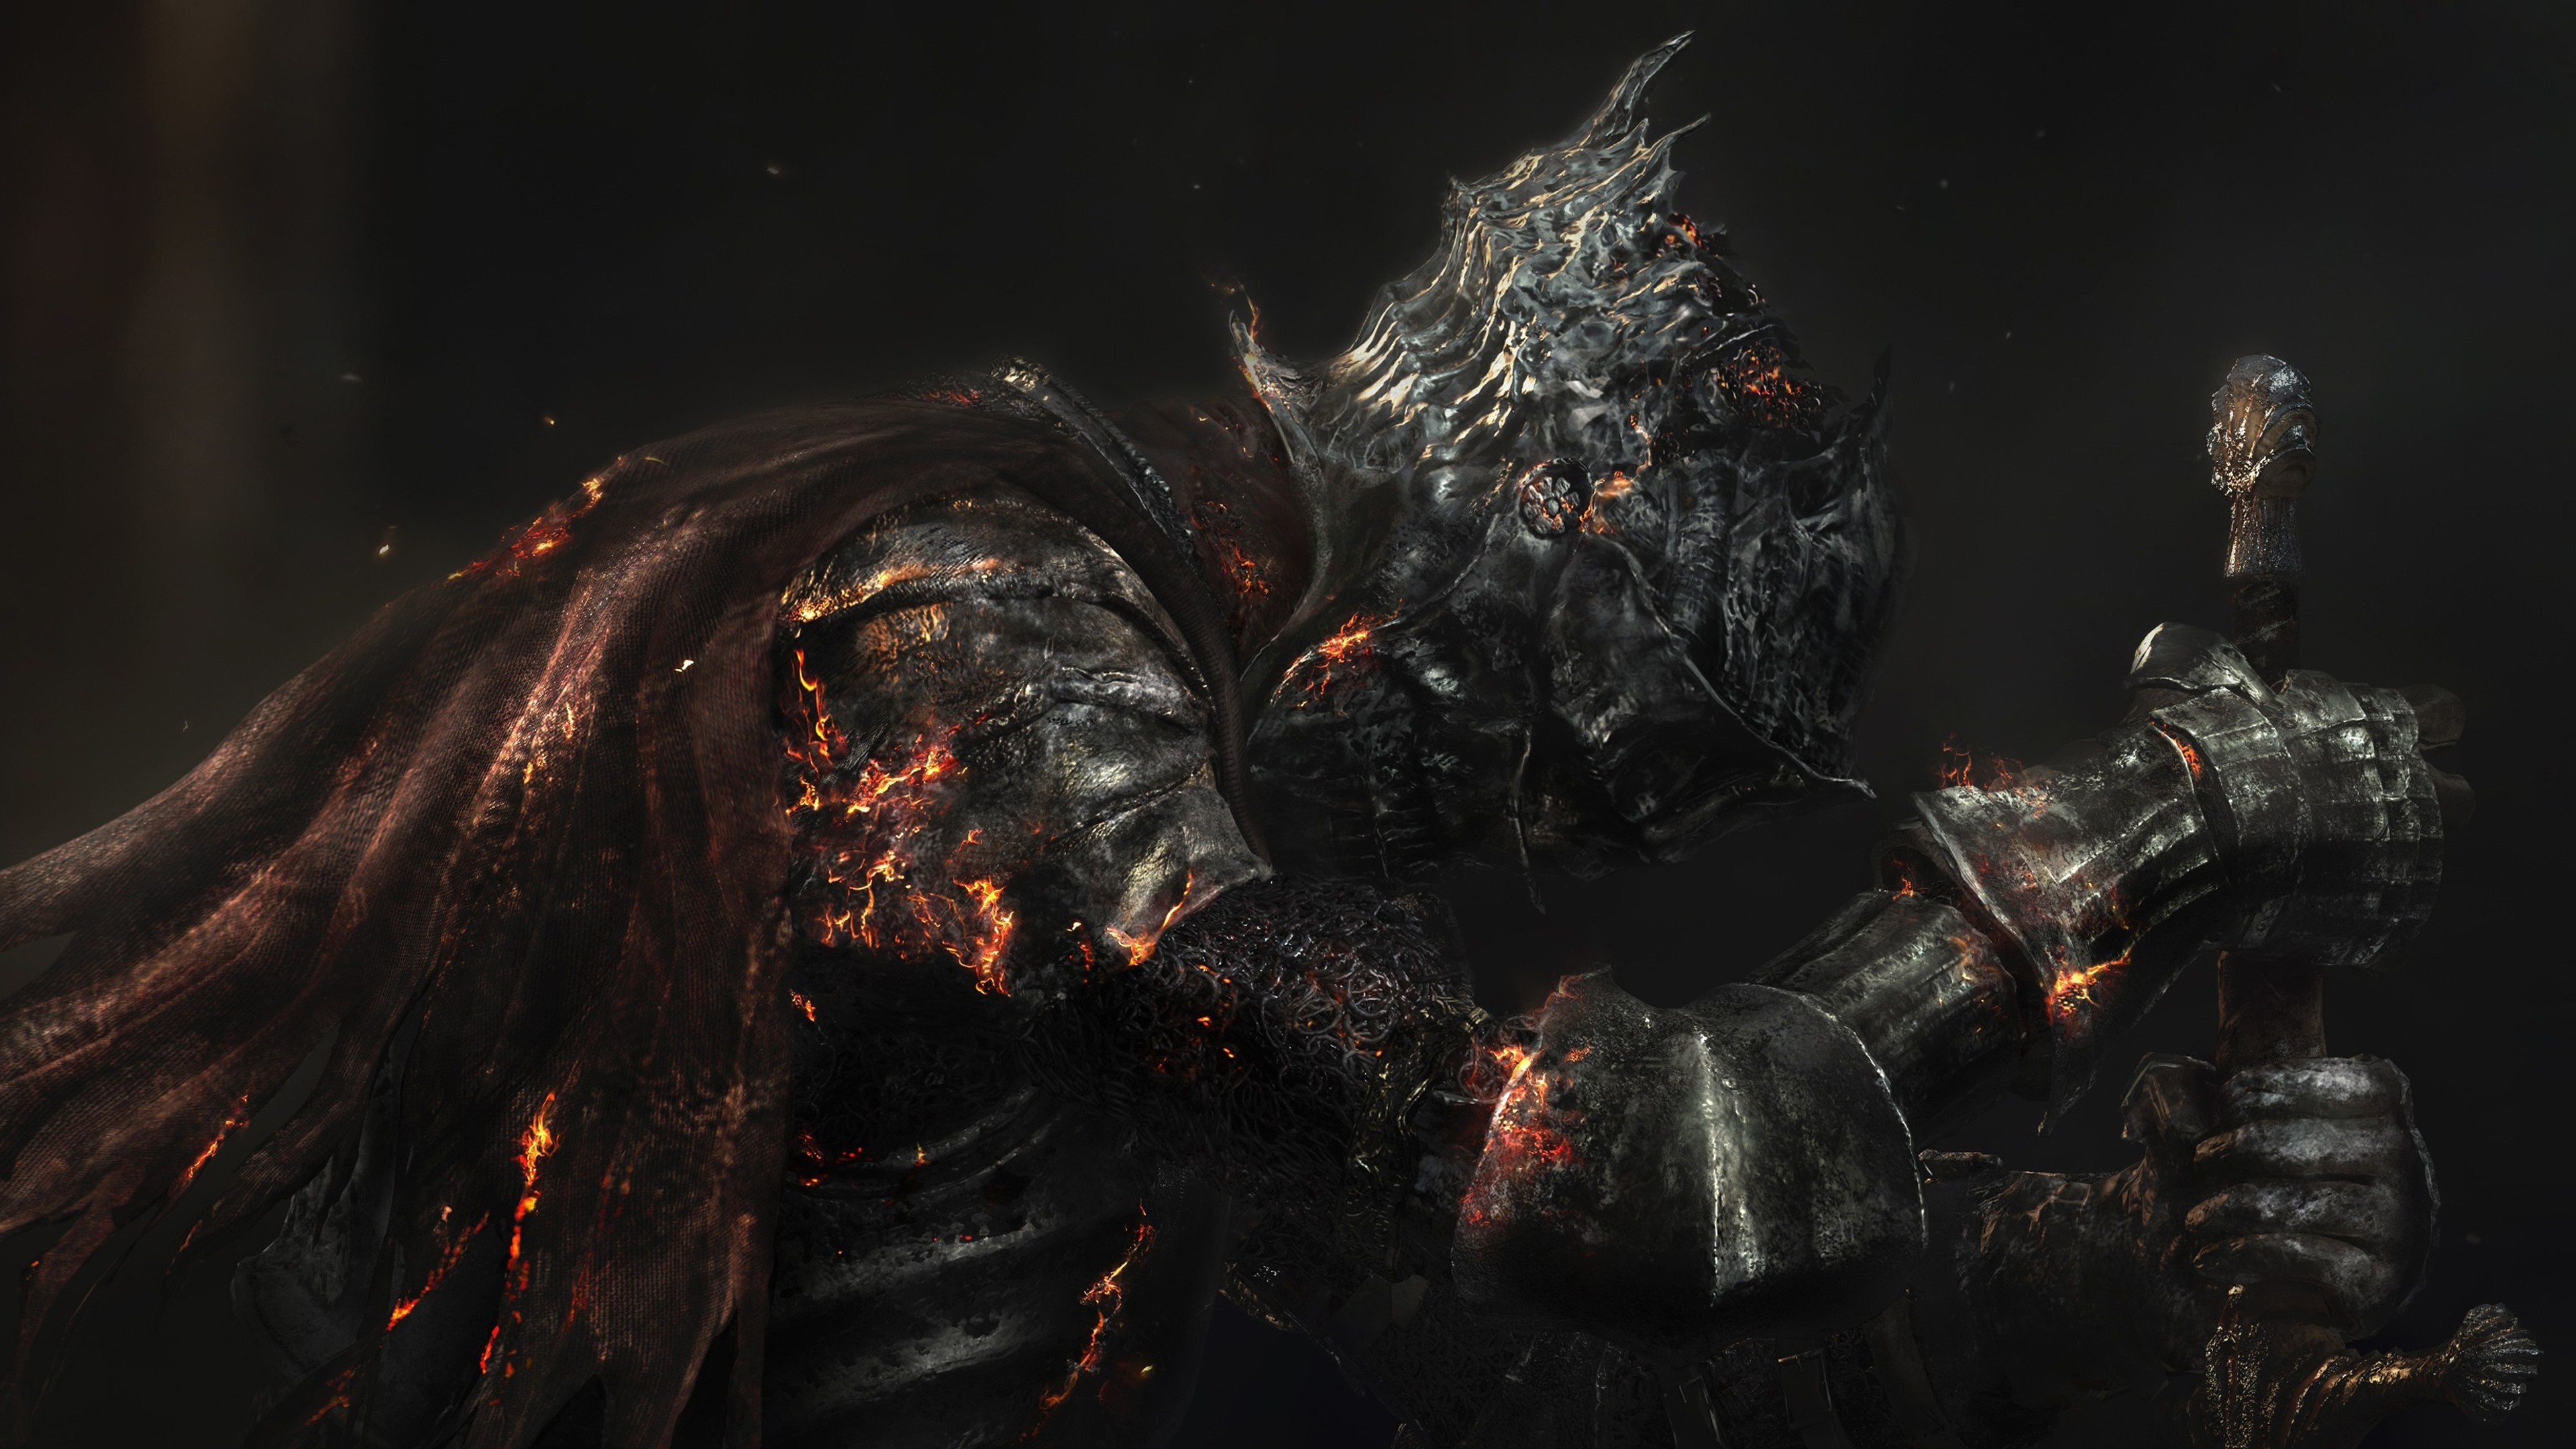 3840x2160 Dark Souls 3 Animated Wallpaper - WallpaperSafari